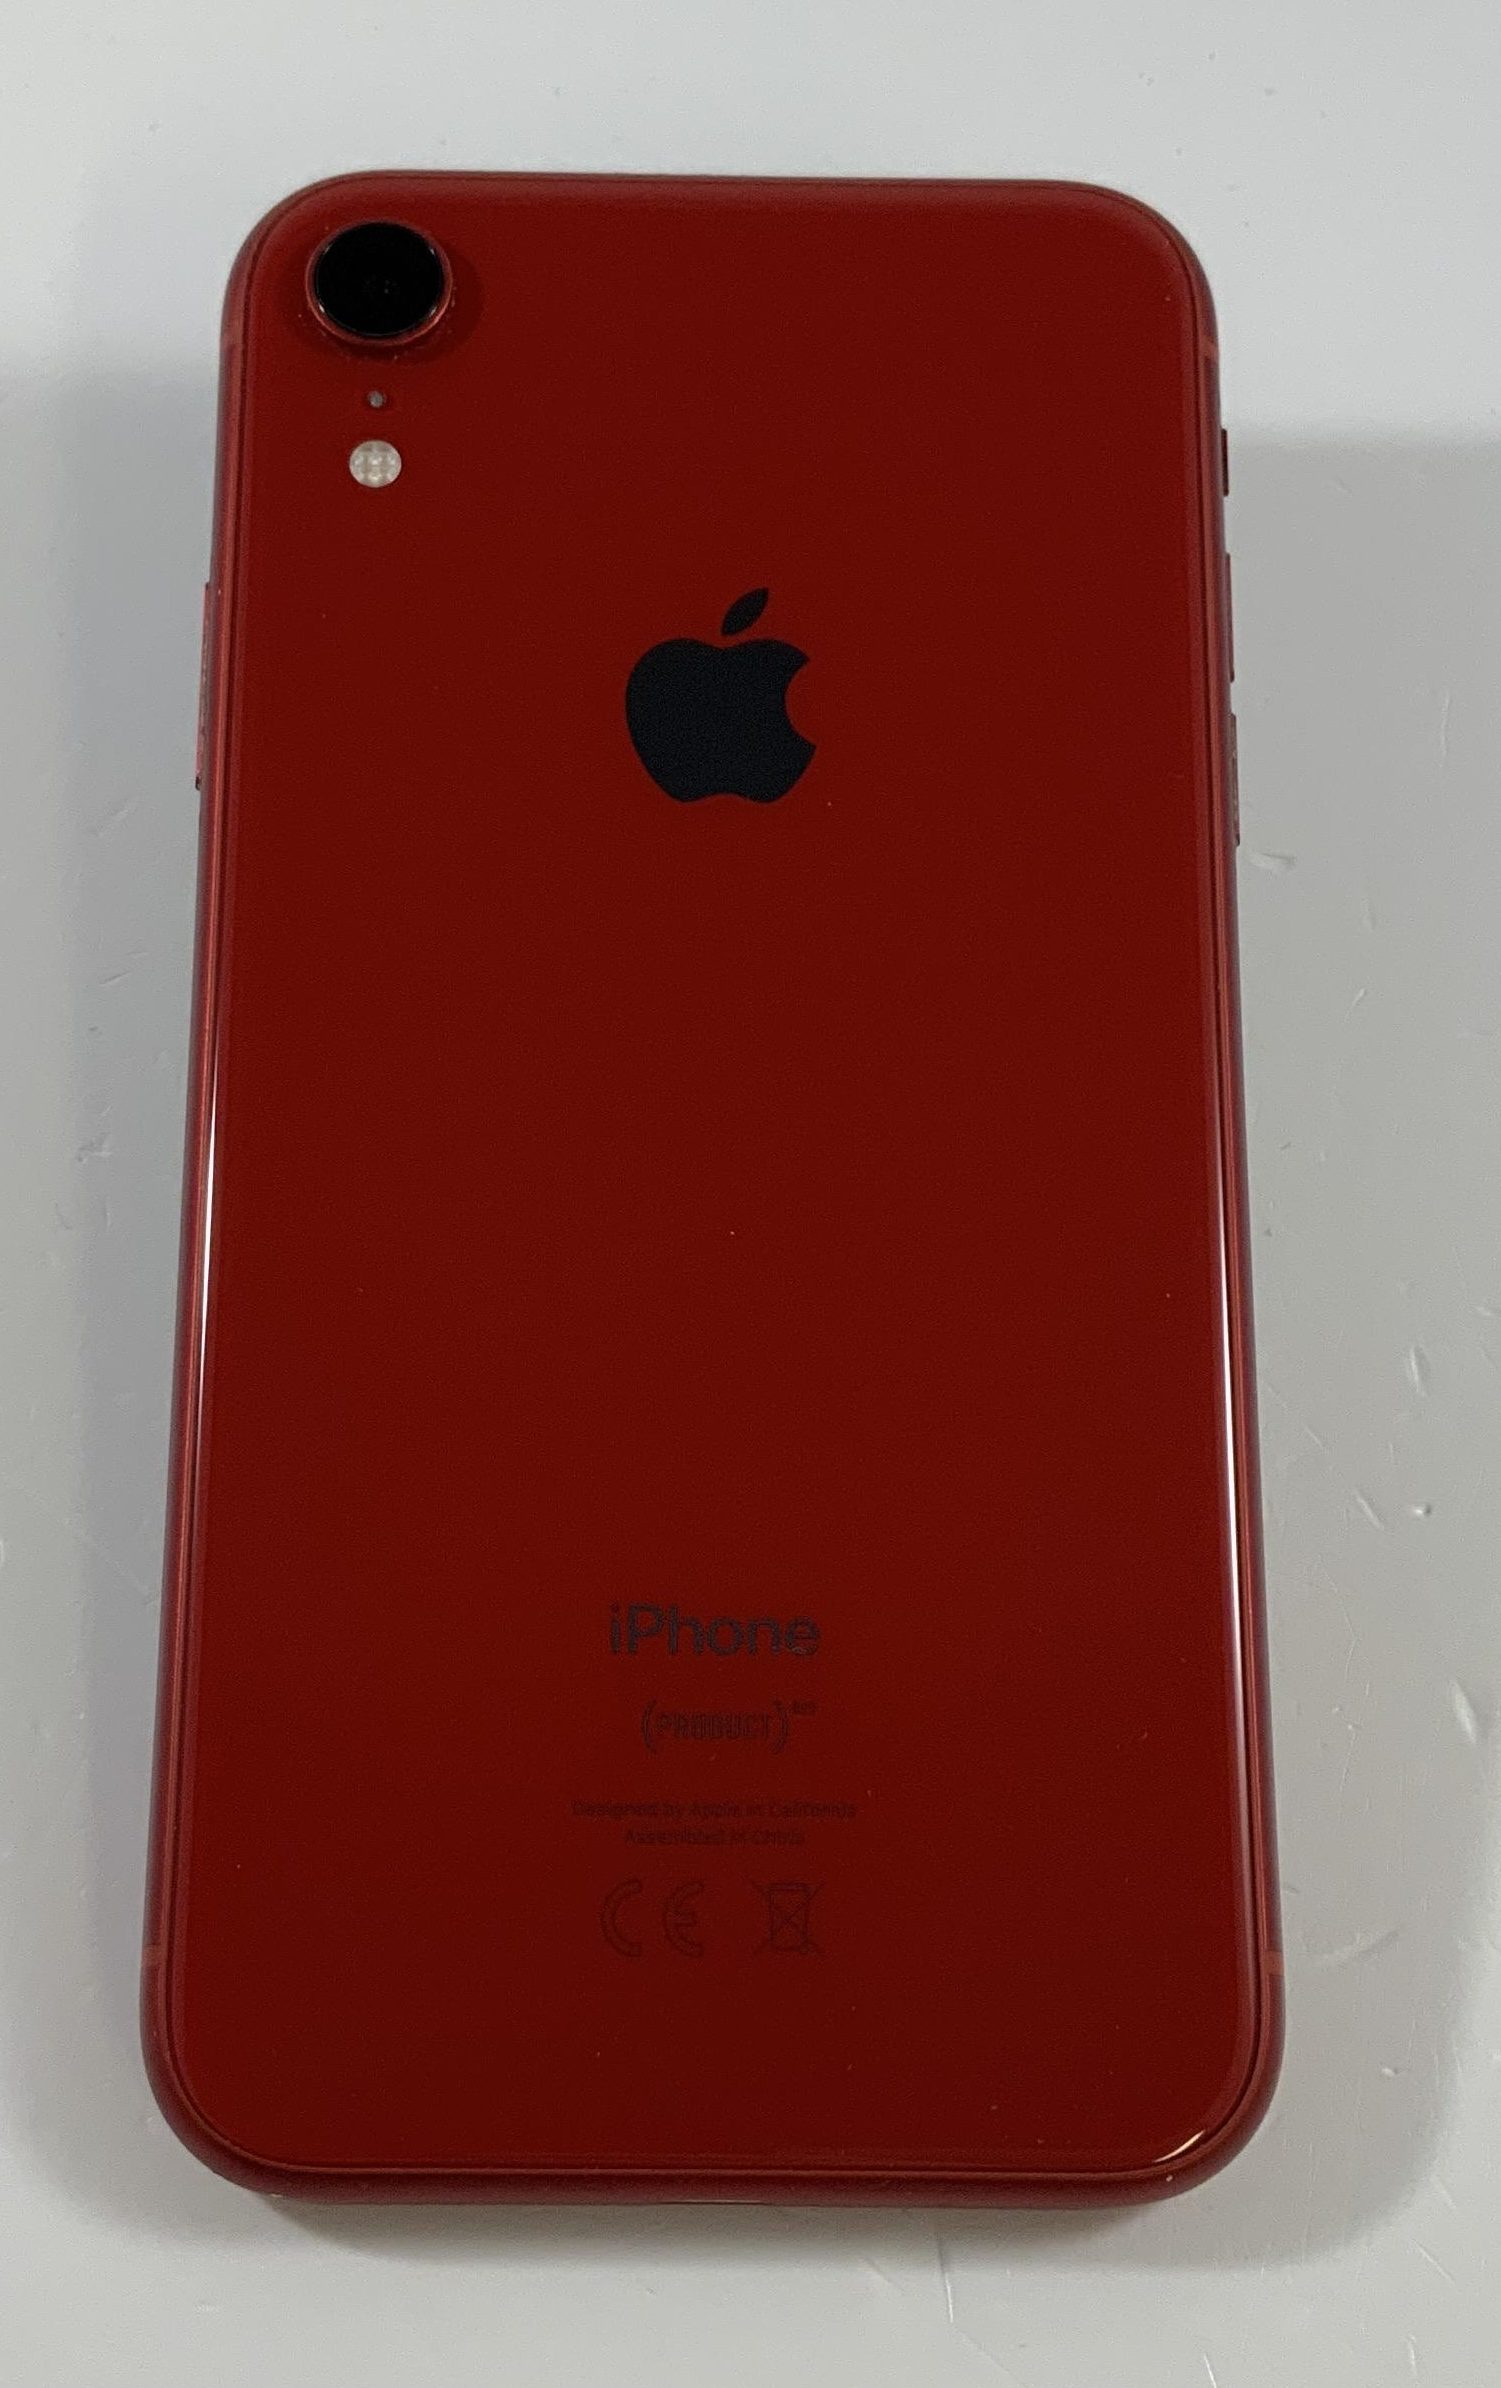 iPhone XR 128GB, 128GB, Red, Afbeelding 2